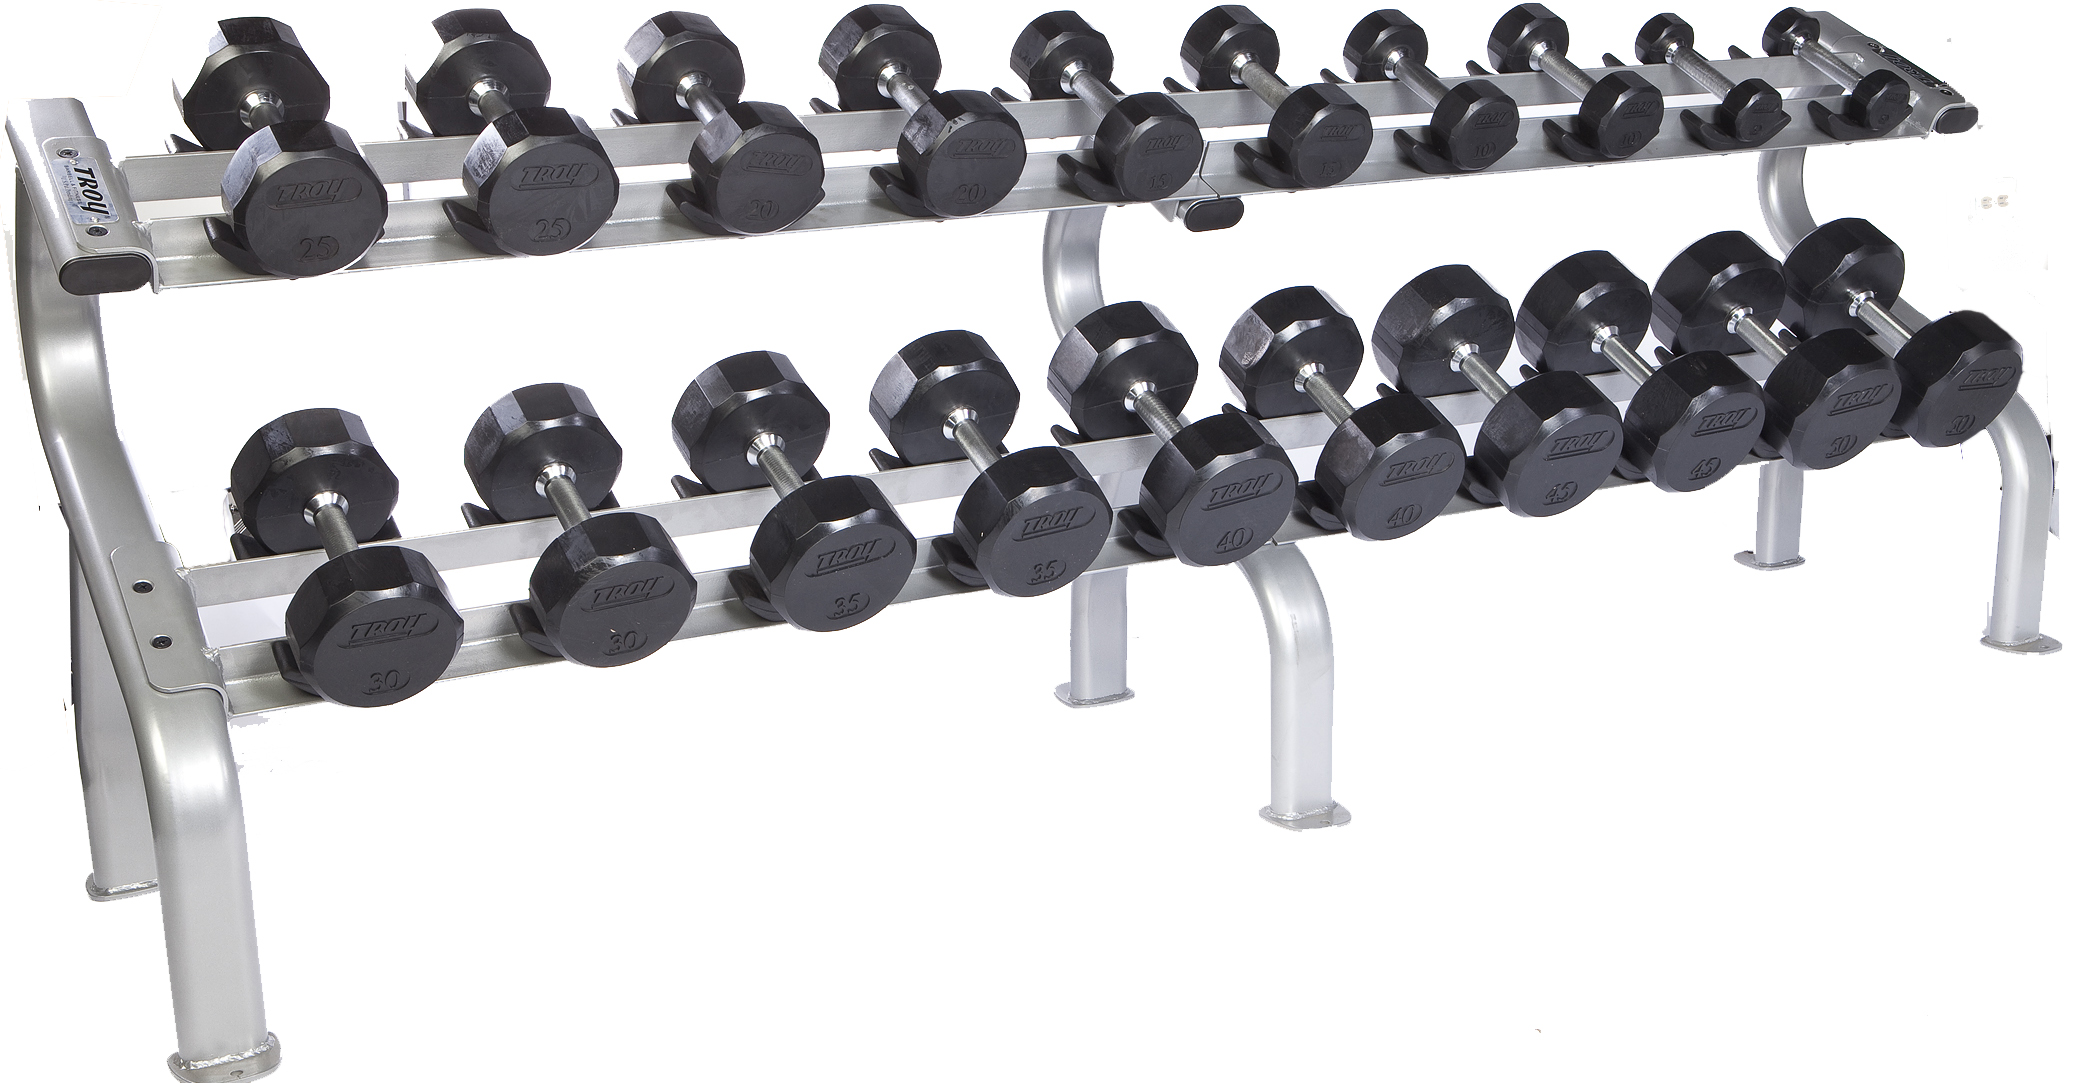 Troy 5-50 lbs. (10 Pairs) Rubber Dumbbell Weight Set w/ Rack - Flat 12-Sided Head (Commercial Gym Quality) by Troy Barbell